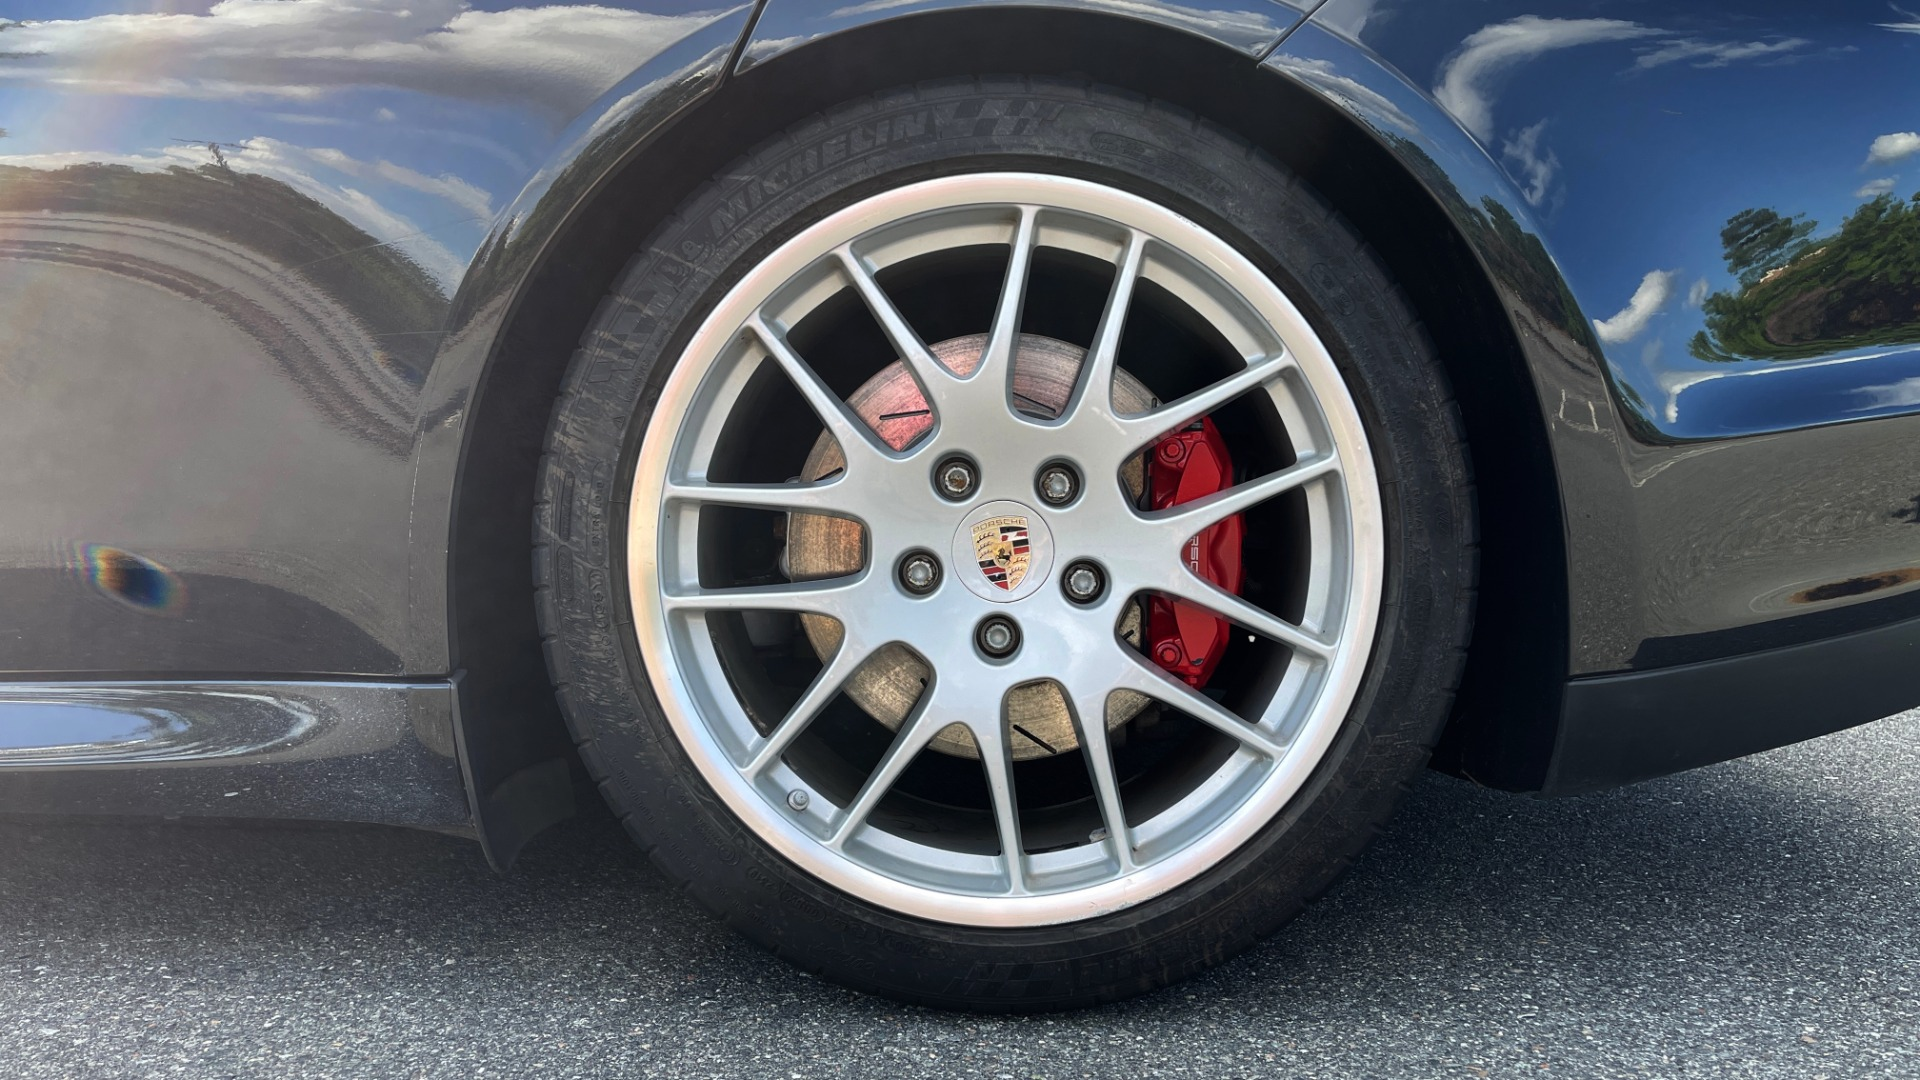 Used 2010 Porsche PANAMERA 4DR HB TURBO / SPORT CHRONO / BURMESTER / AUTO CLIMATE CONTROL for sale $40,995 at Formula Imports in Charlotte NC 28227 63